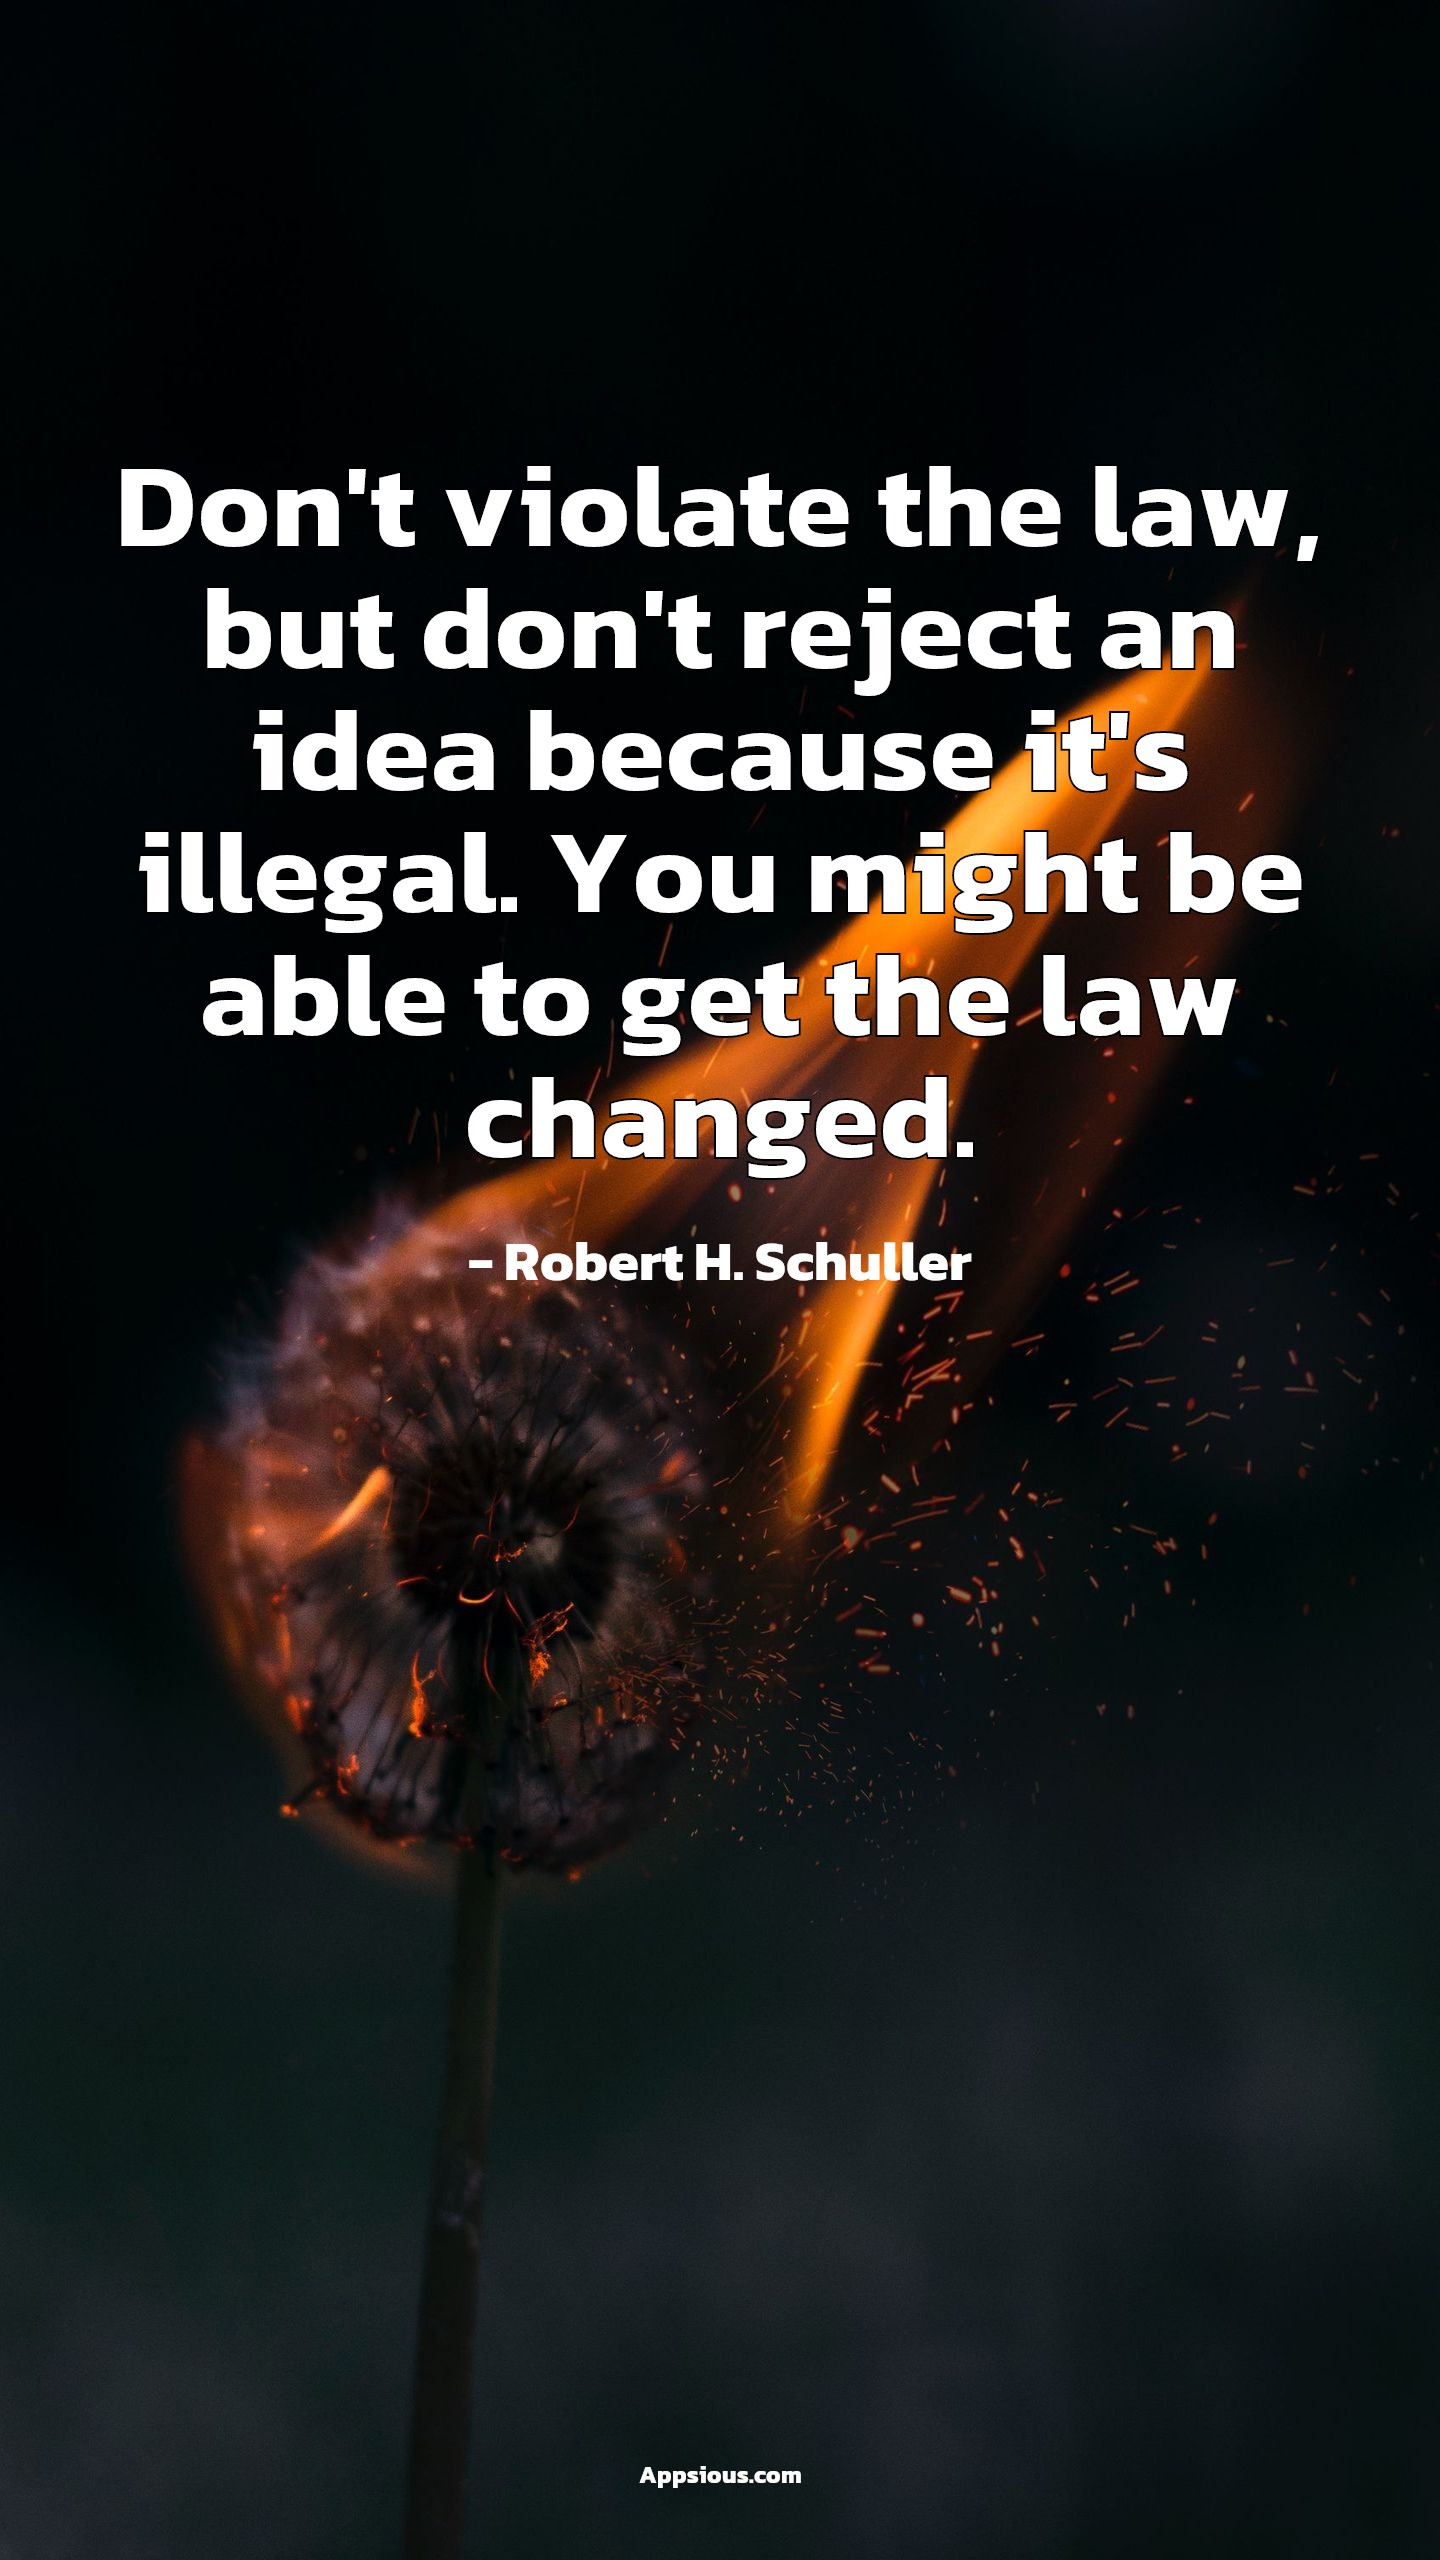 Don't violate the law, but don't reject an idea because it's illegal. You might be able to get the law changed.